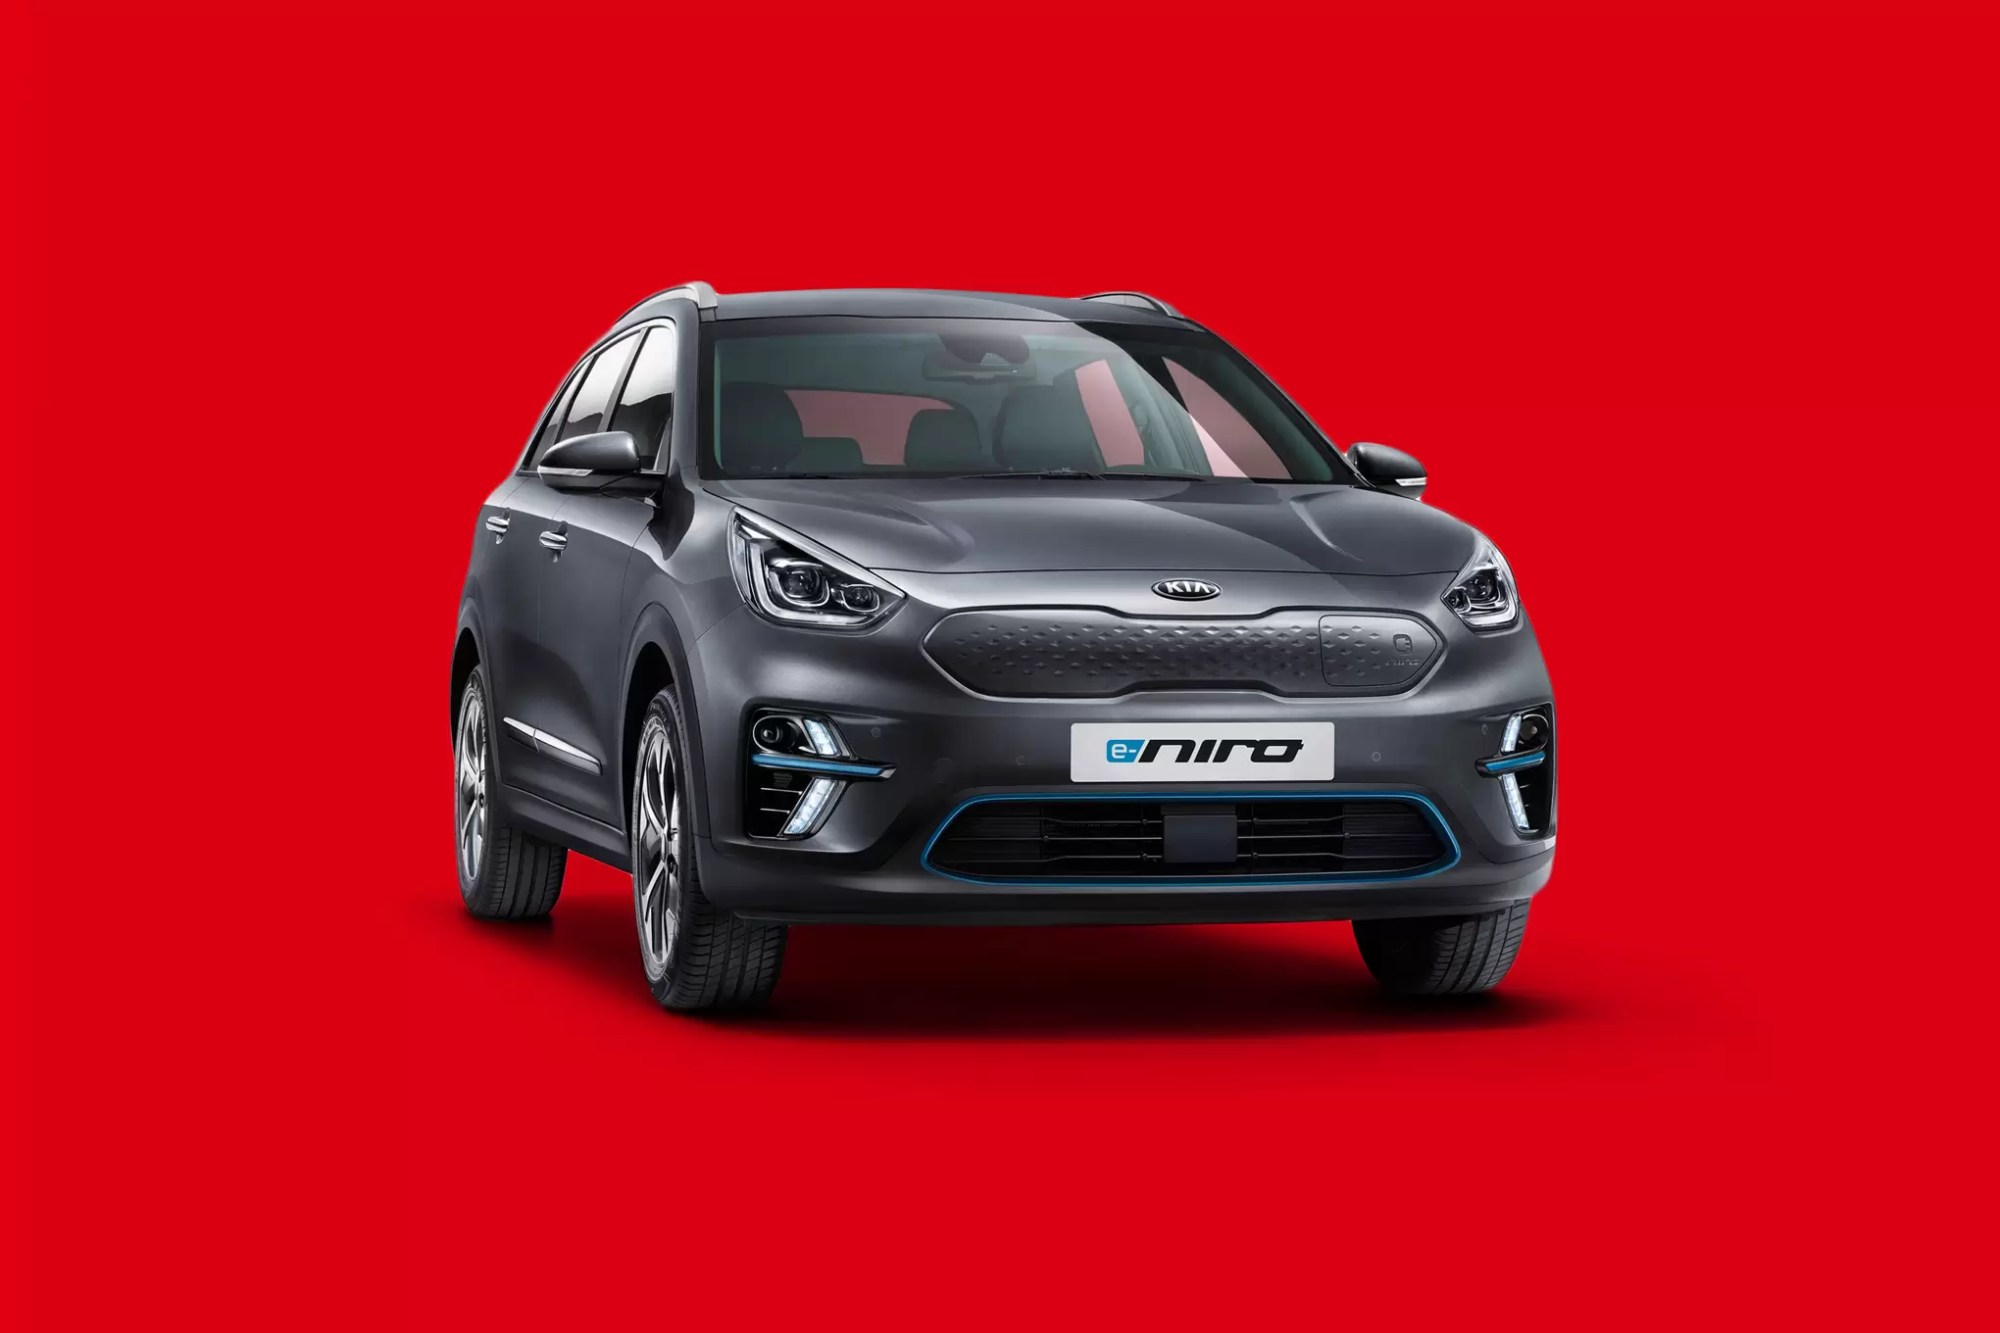 hight resolution of kia e niro review precisely what tesla s model 3 should have been wired uk